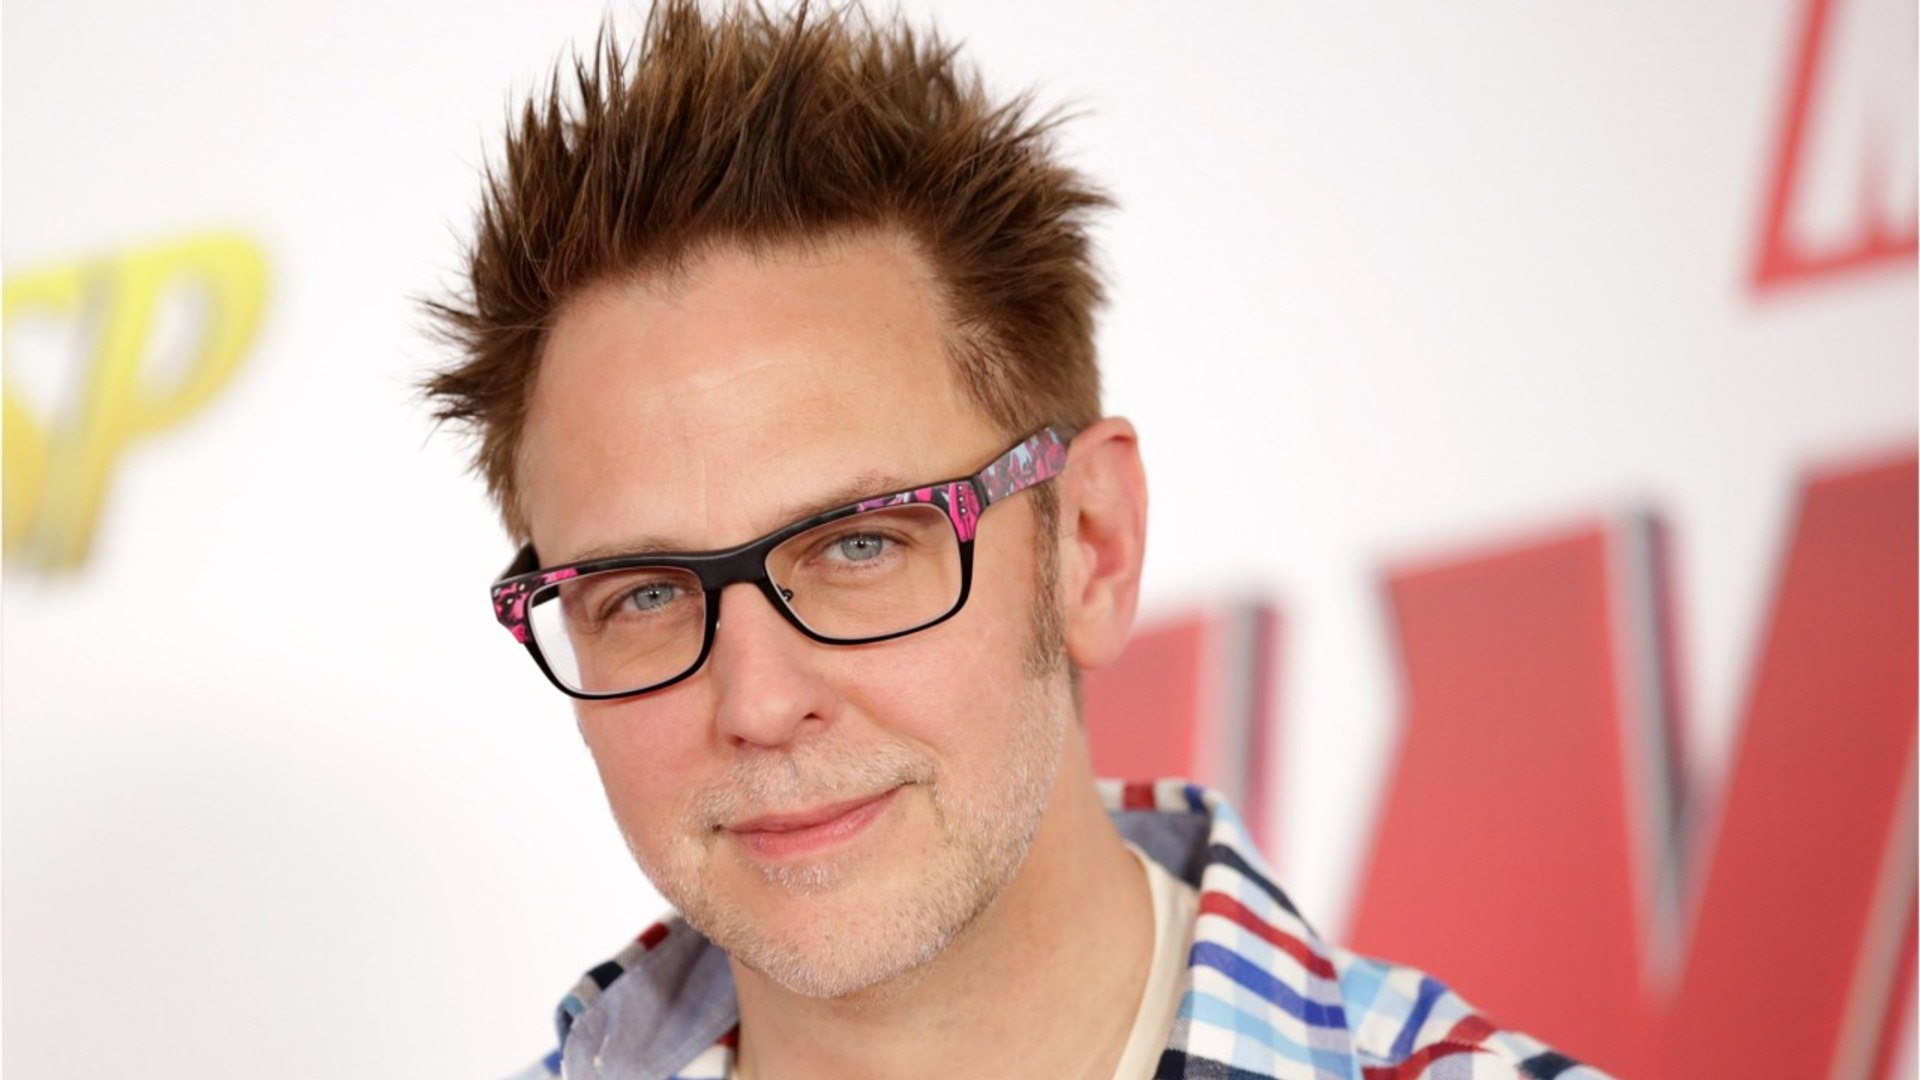 James Gunn Firing Challenges People To Determine Standards Of Acceptable Speech